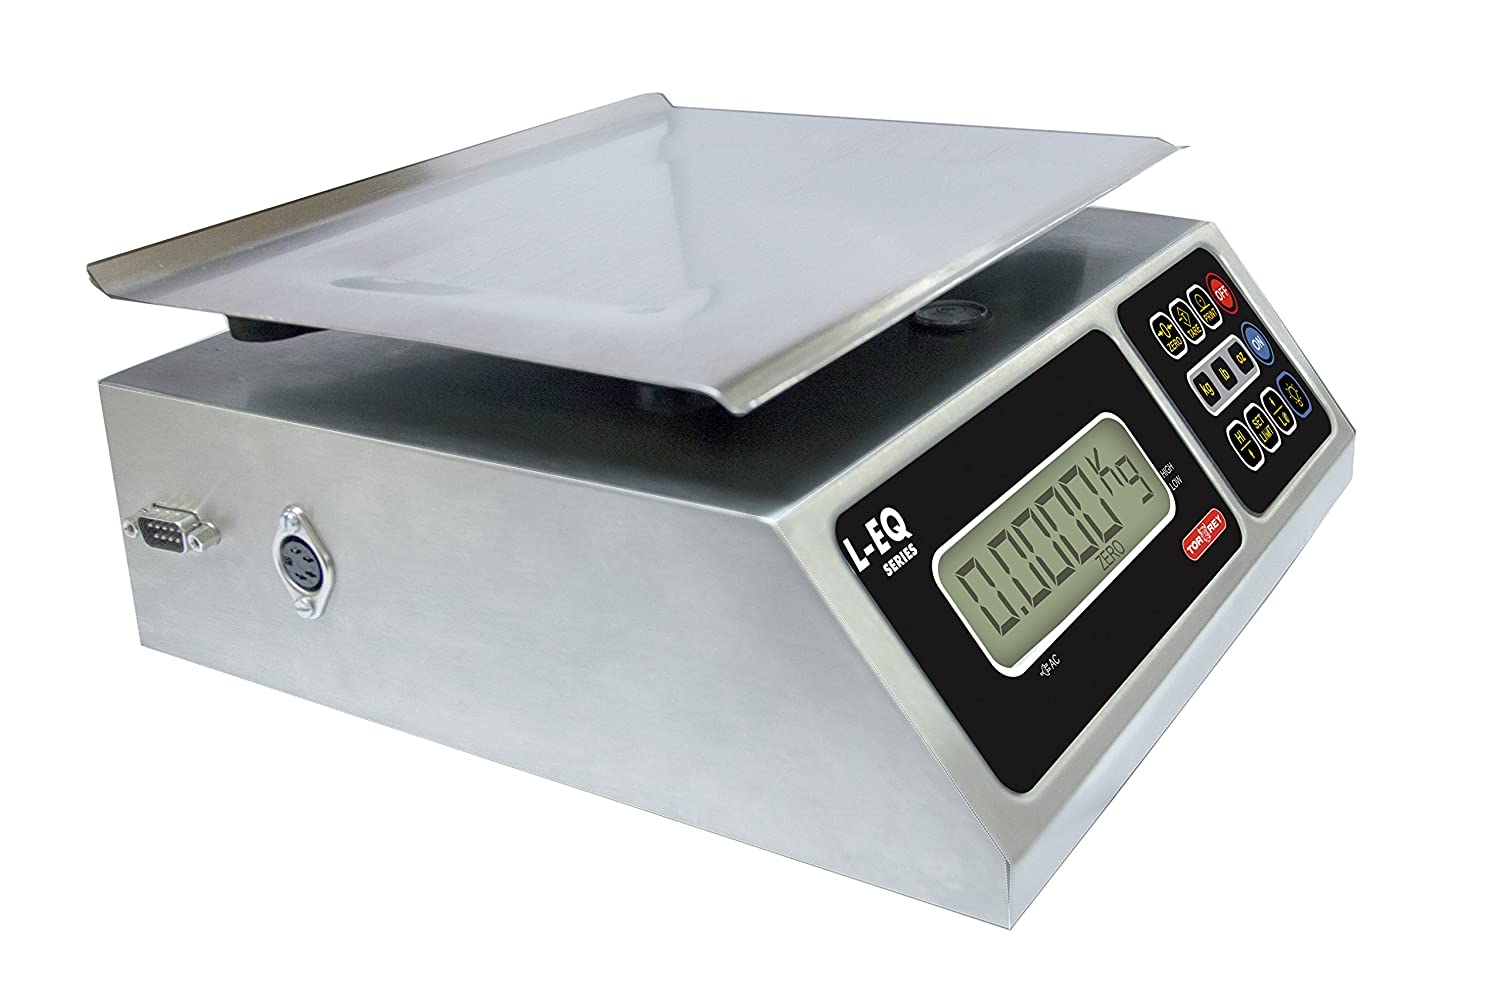 Amazon.com: TORREY LEQ 5/10 High Precision Digital Portion Control Scale, Stainless Steel Construction, 5 kg/10 lb. Capacity: Kitchen & Dining